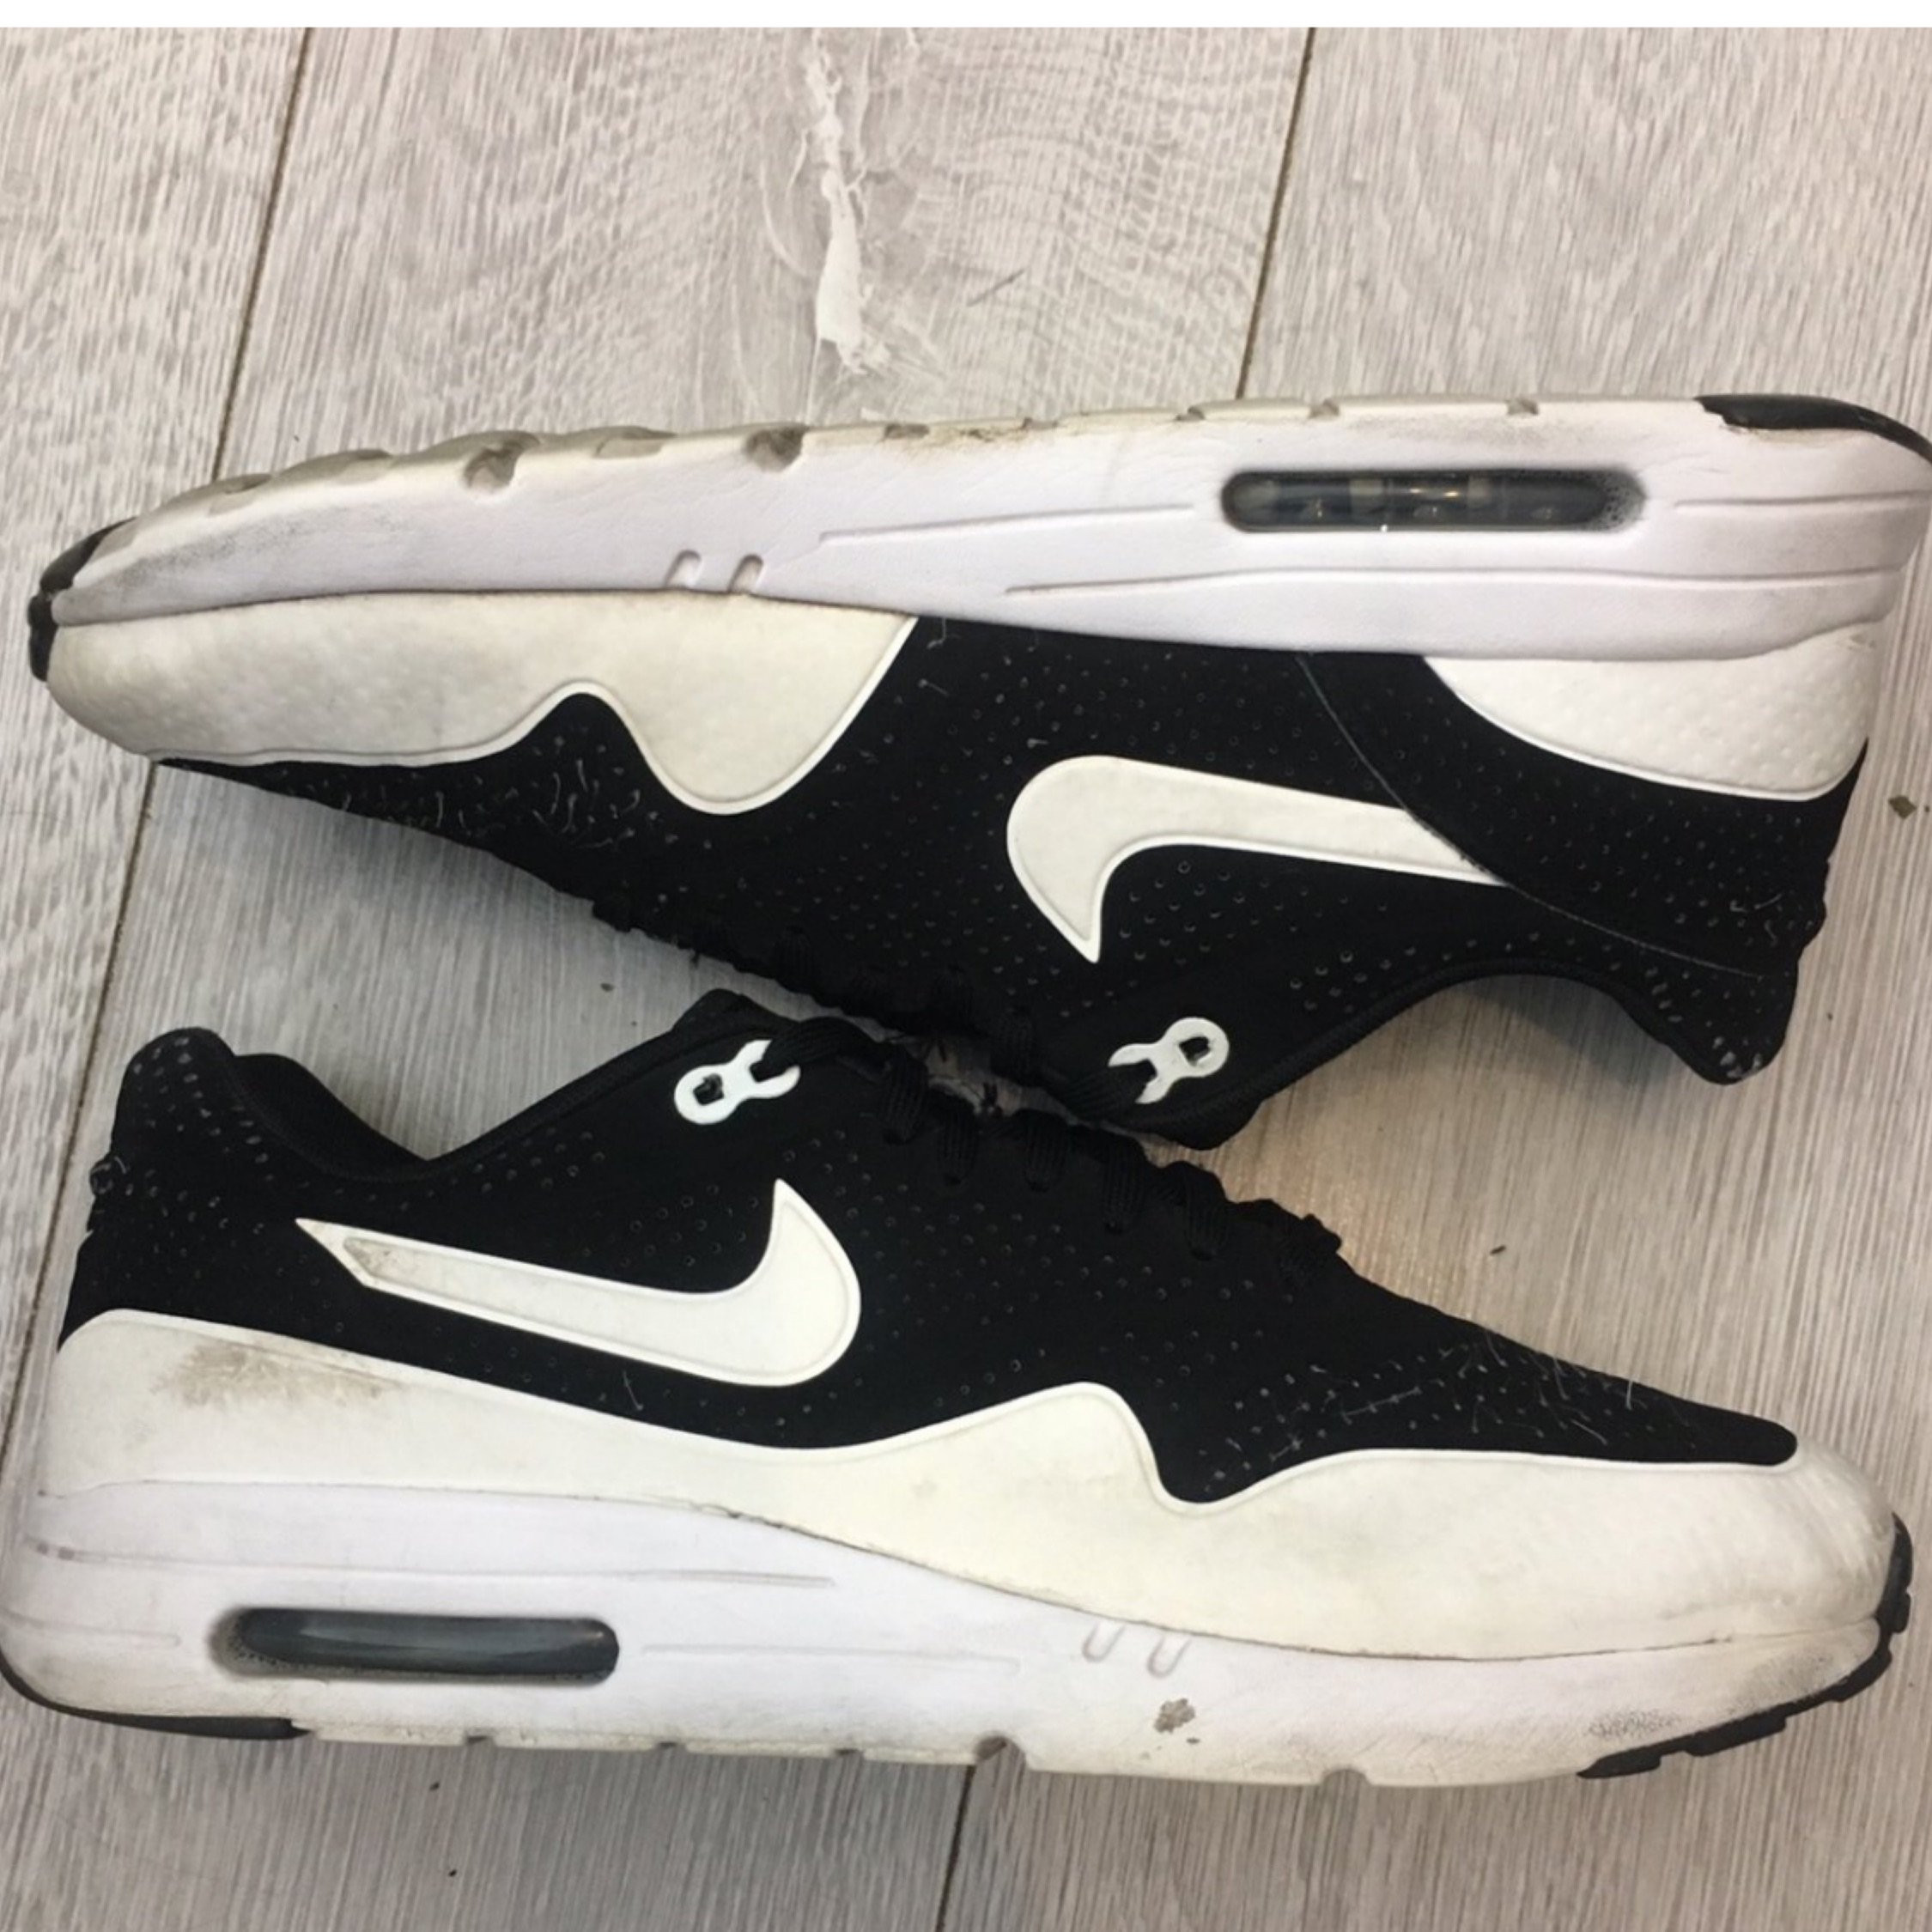 hot products wholesale 100% high quality Nike Air Max 1 Ultra Moire Size 11 Eu 46